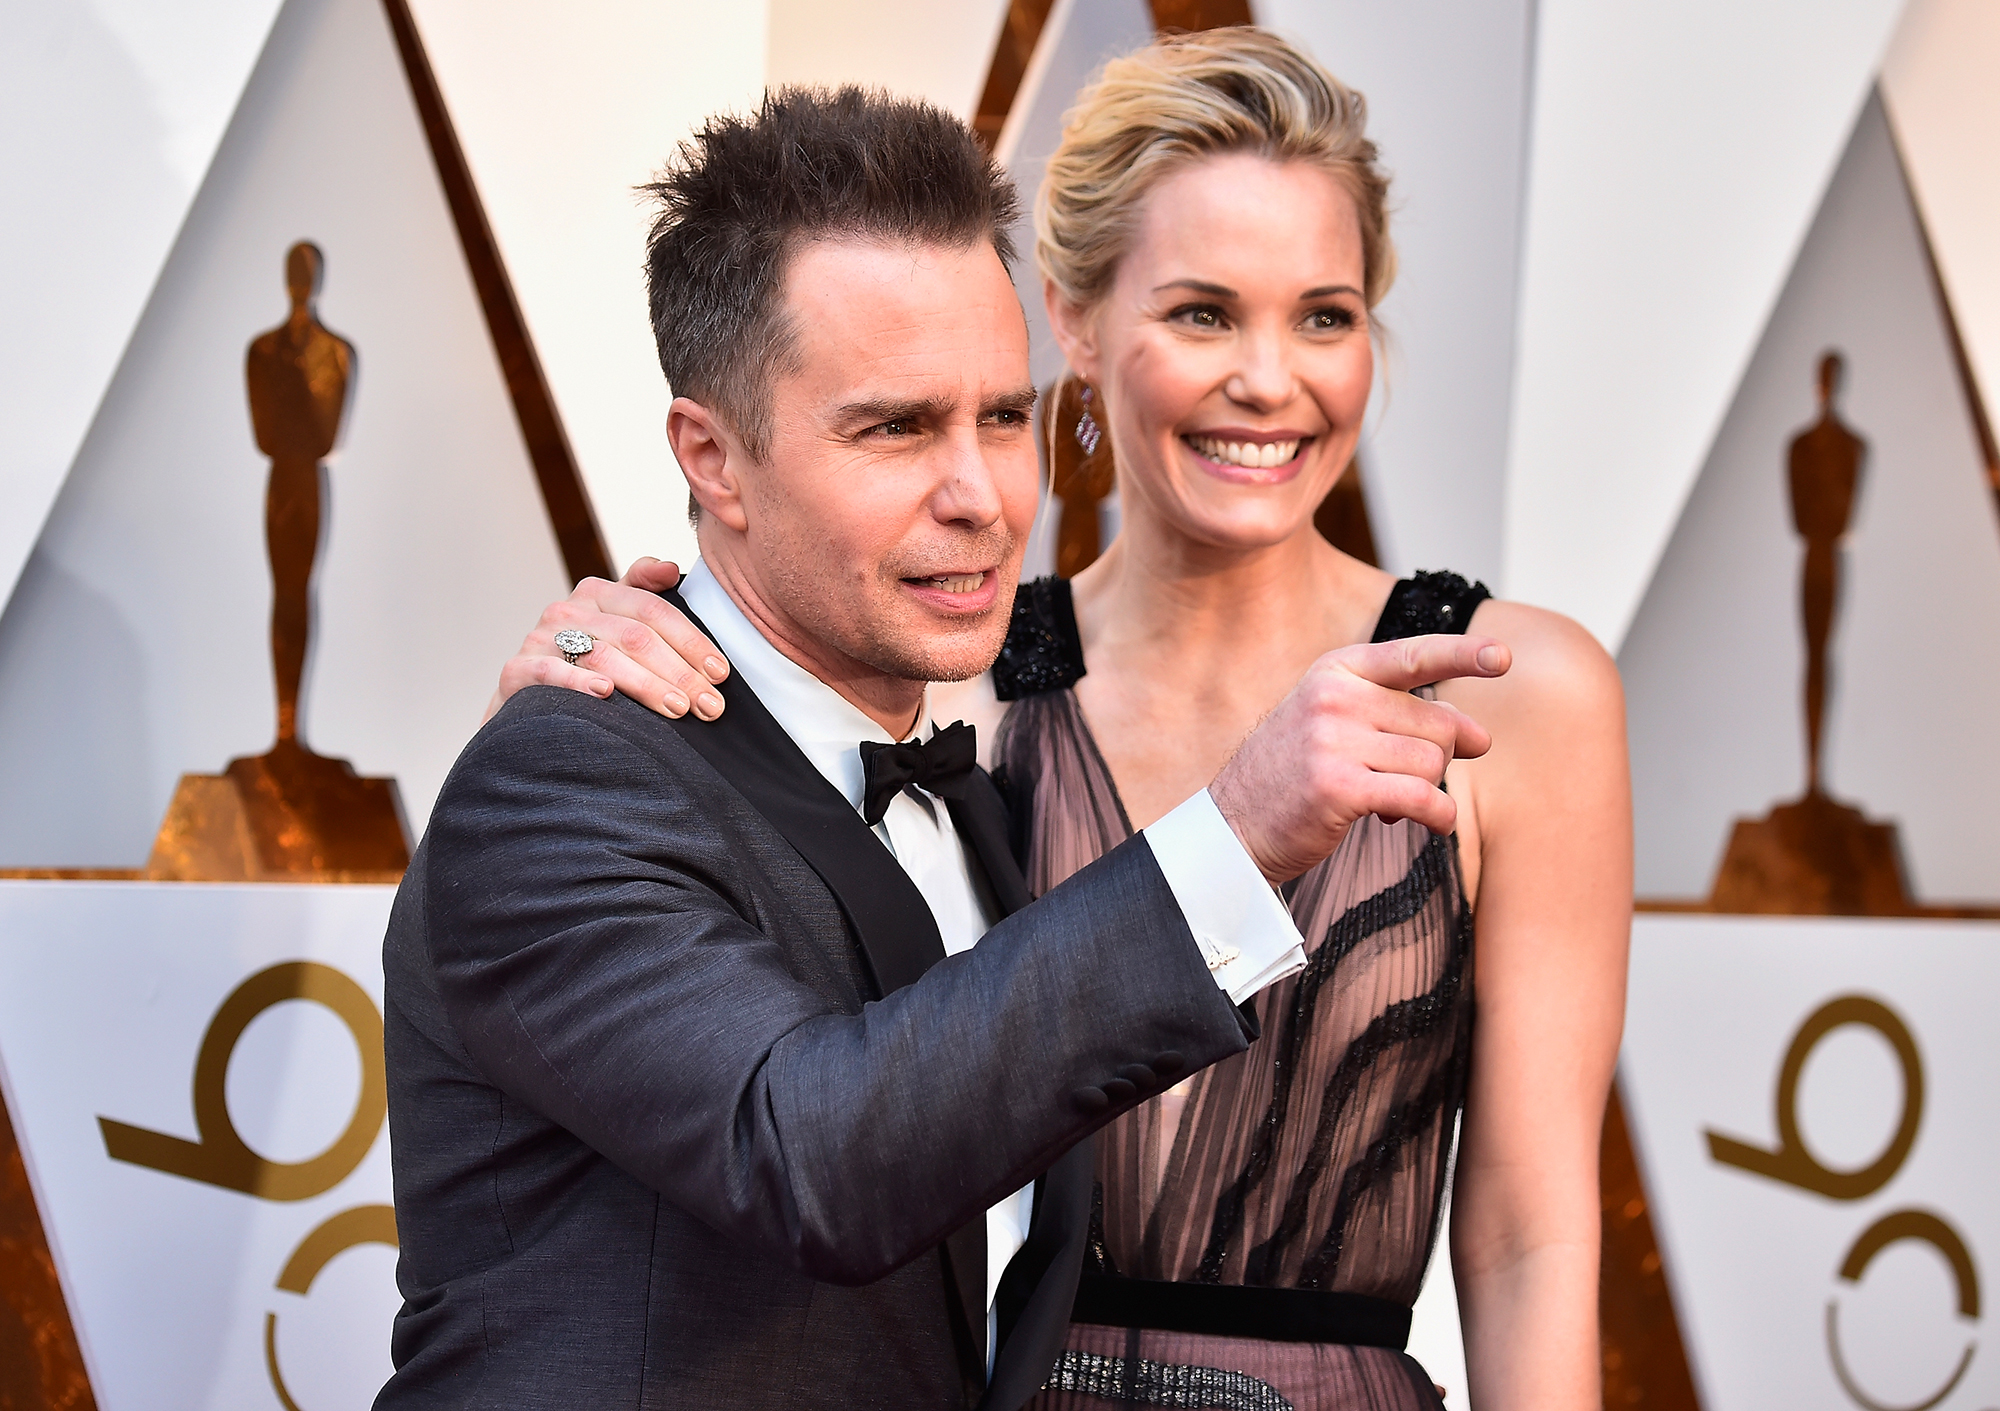 Oscars 2018: Sam Rockwell Wins Best Supporting Actor